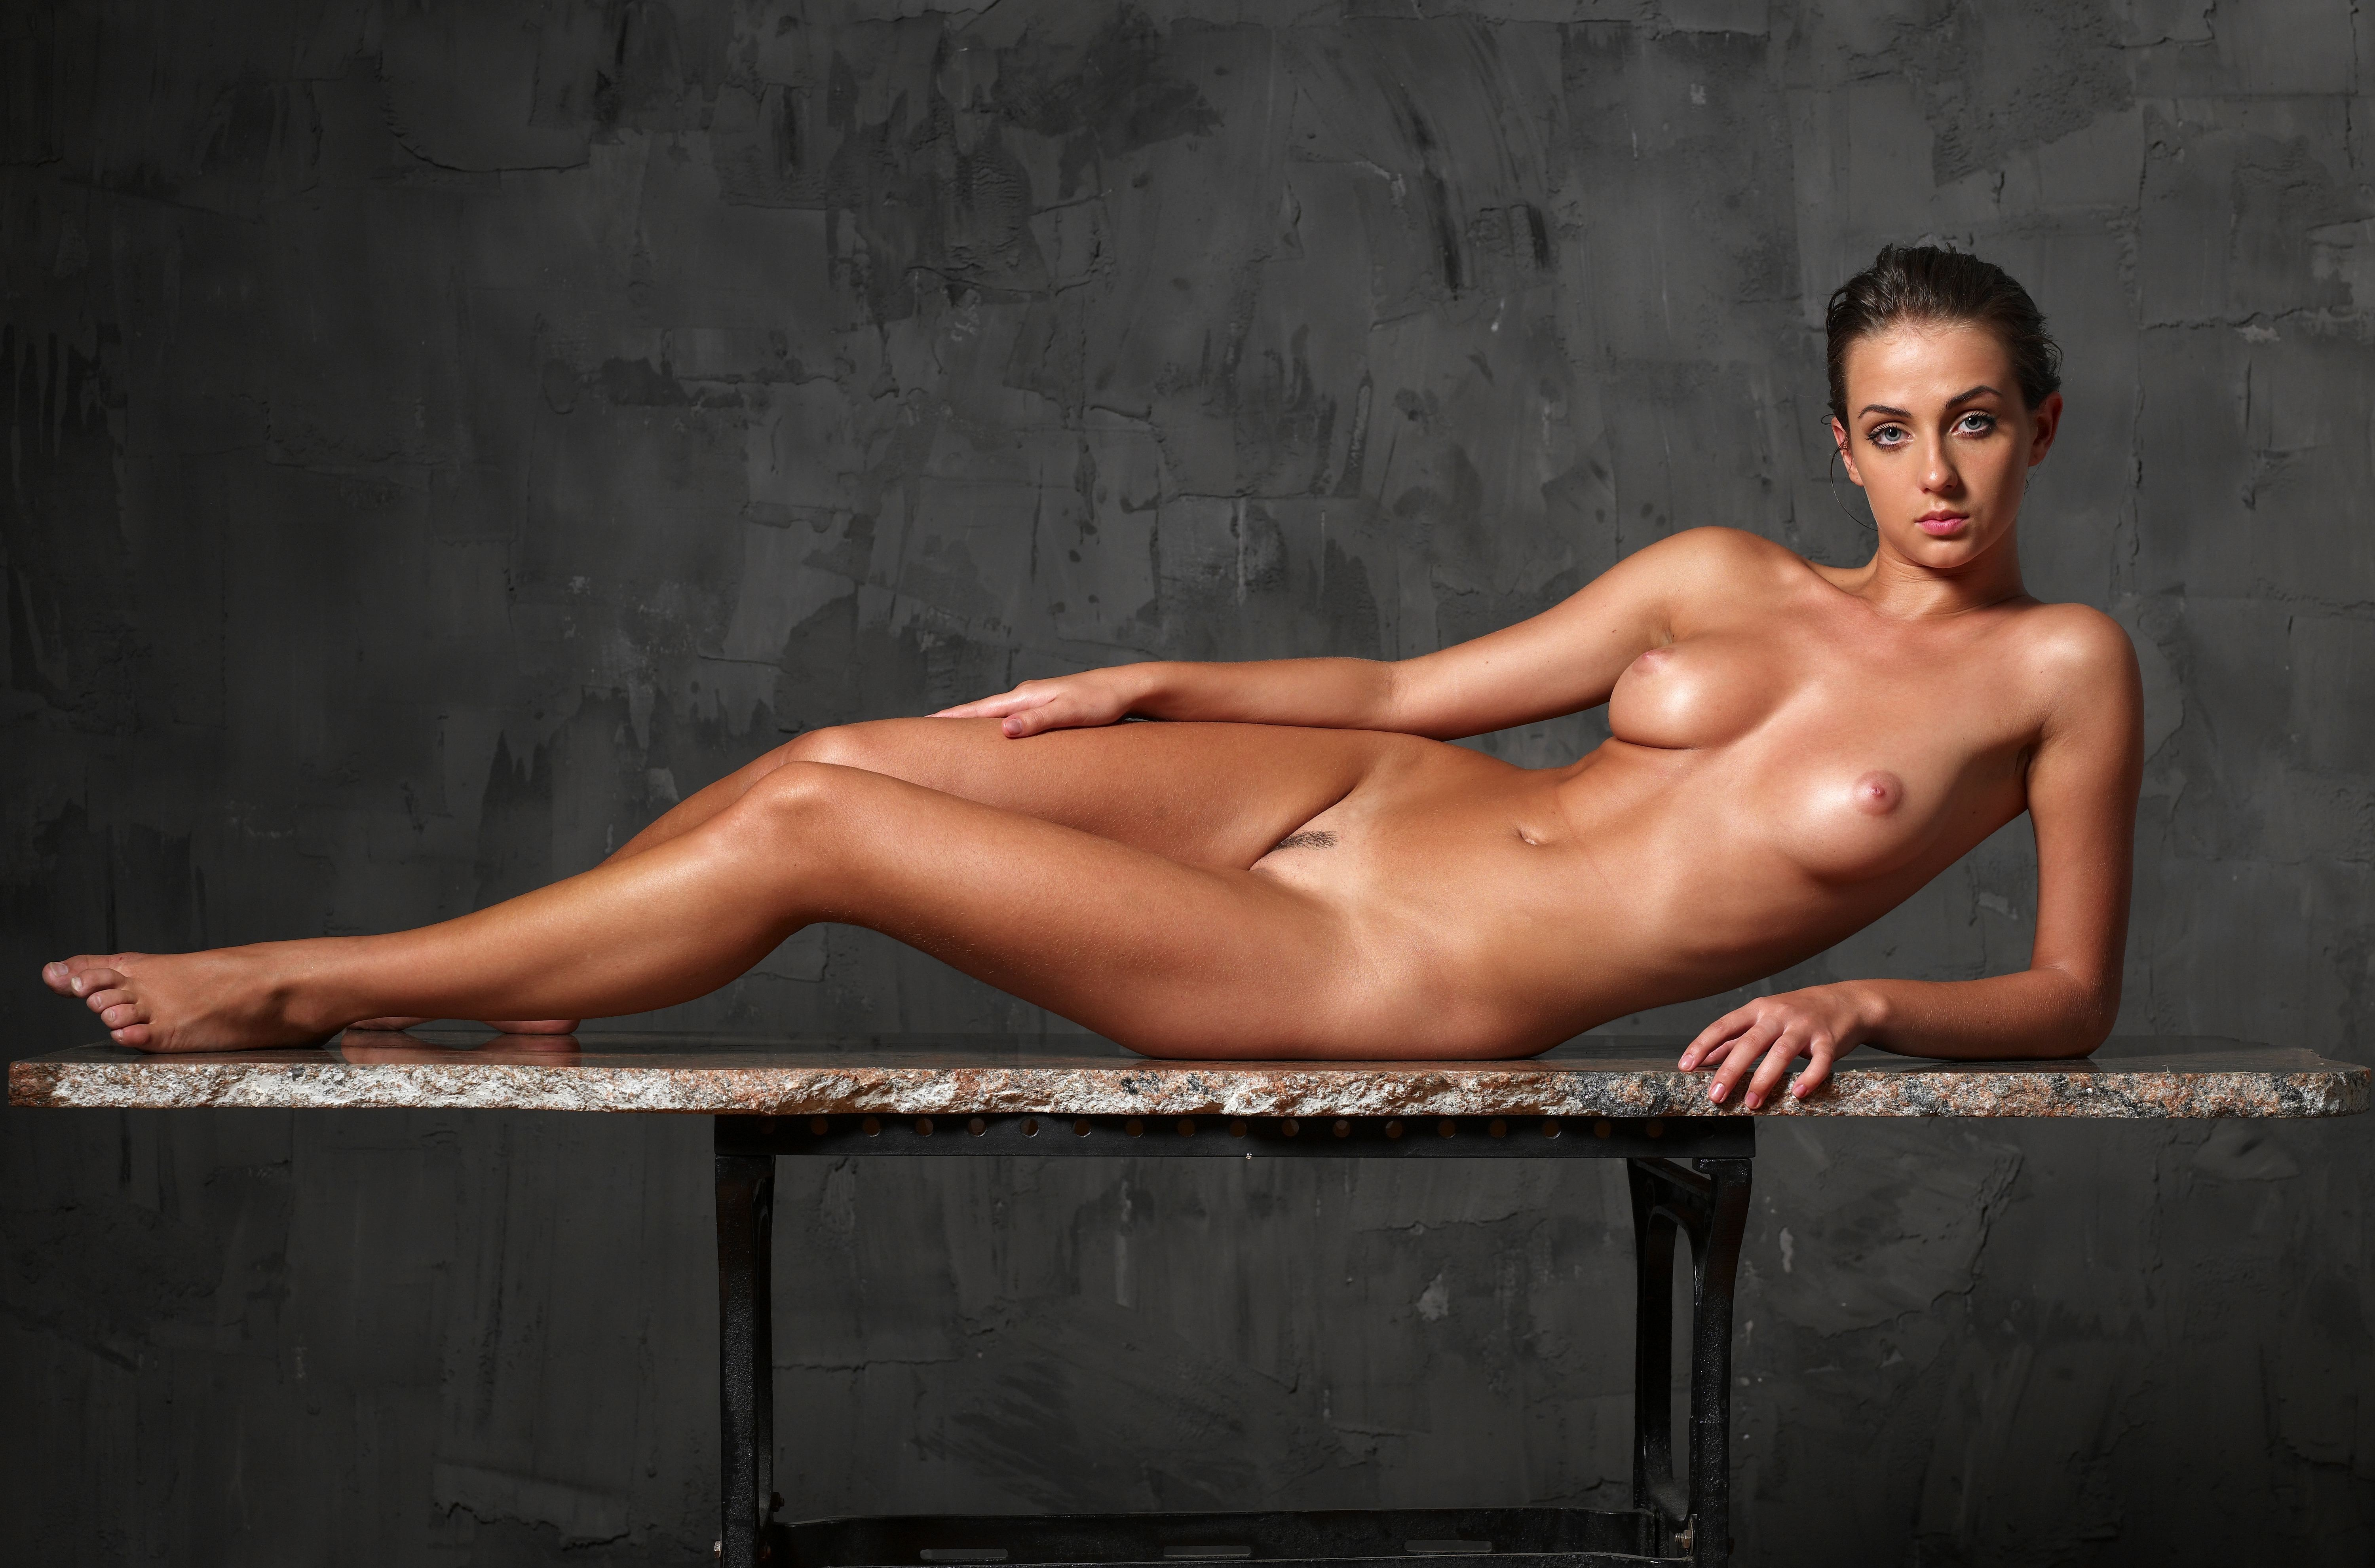 Ashley graham nude under hot transparent outfit